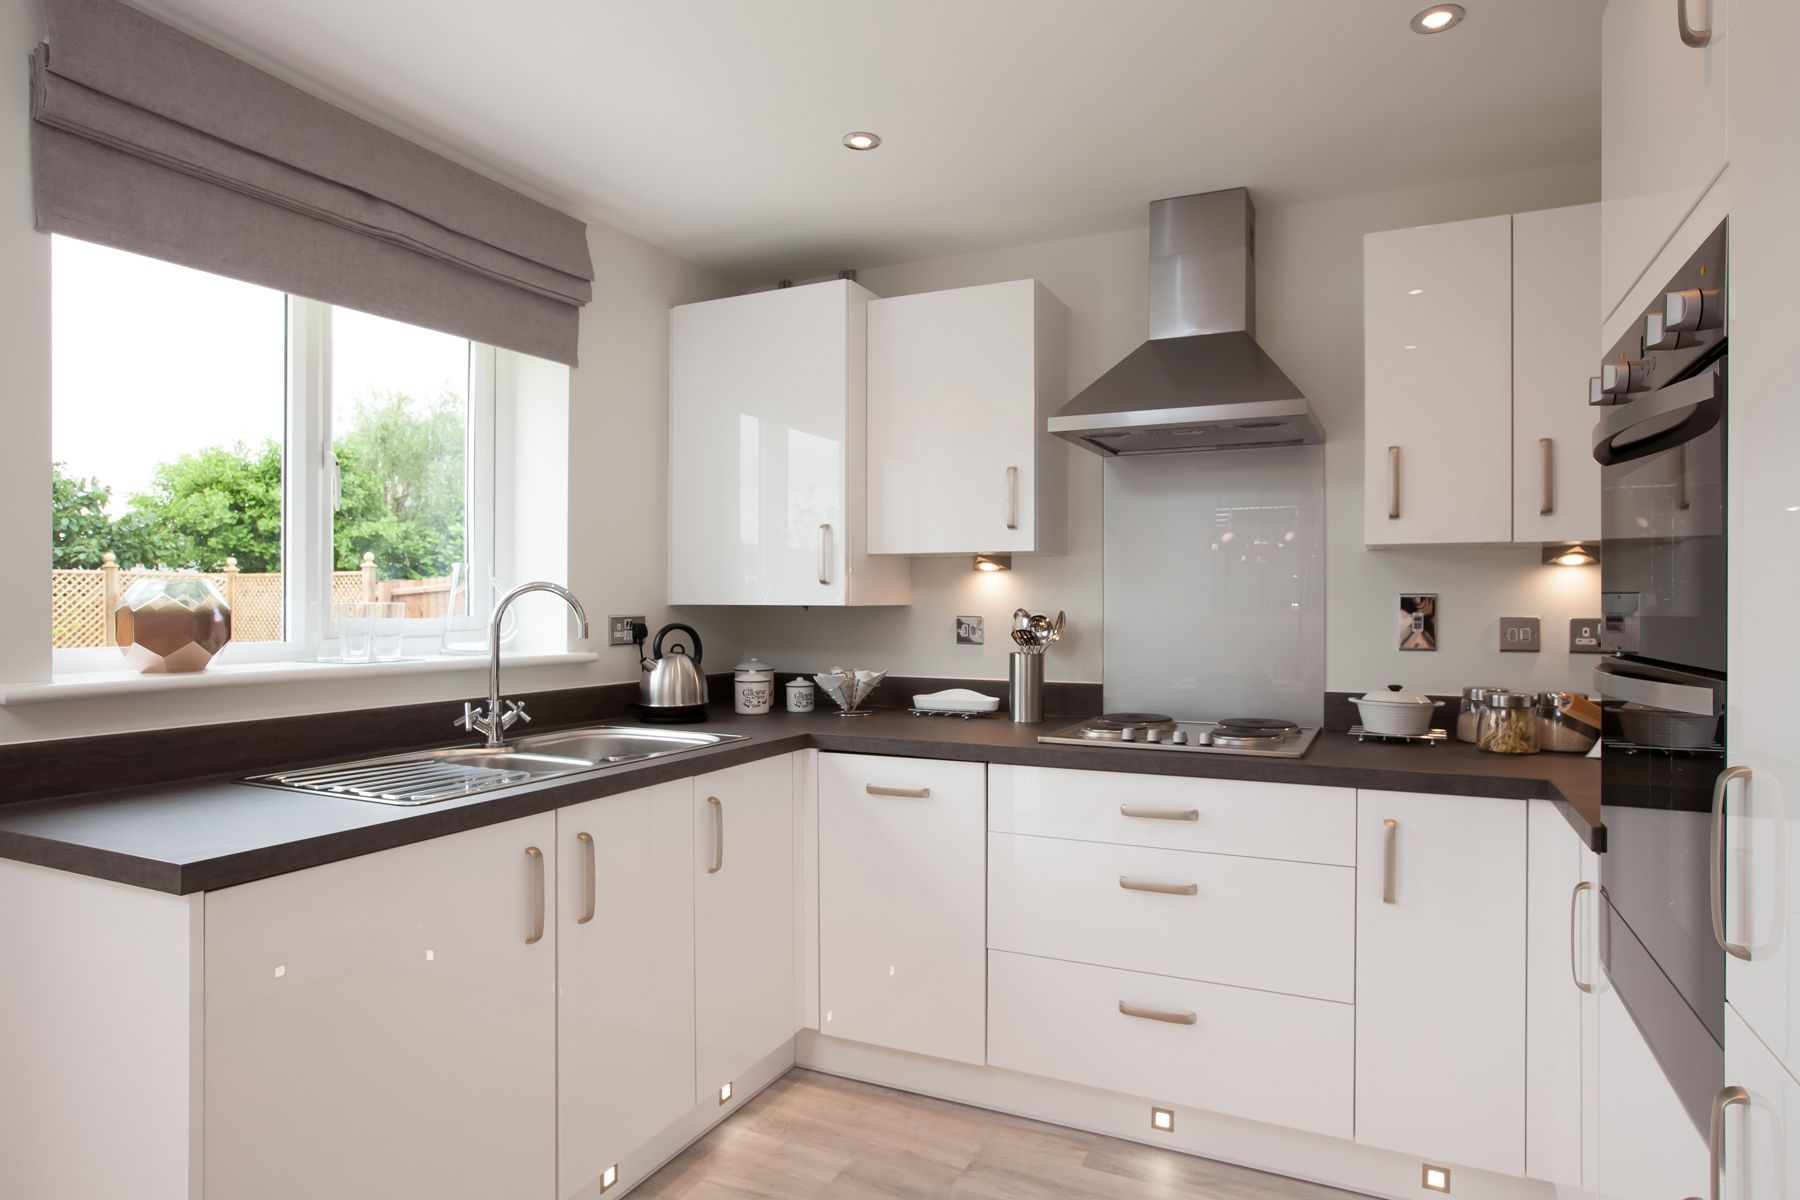 Taylor Wimpey Exeter - Cranbrook - Milton example kitchen 2